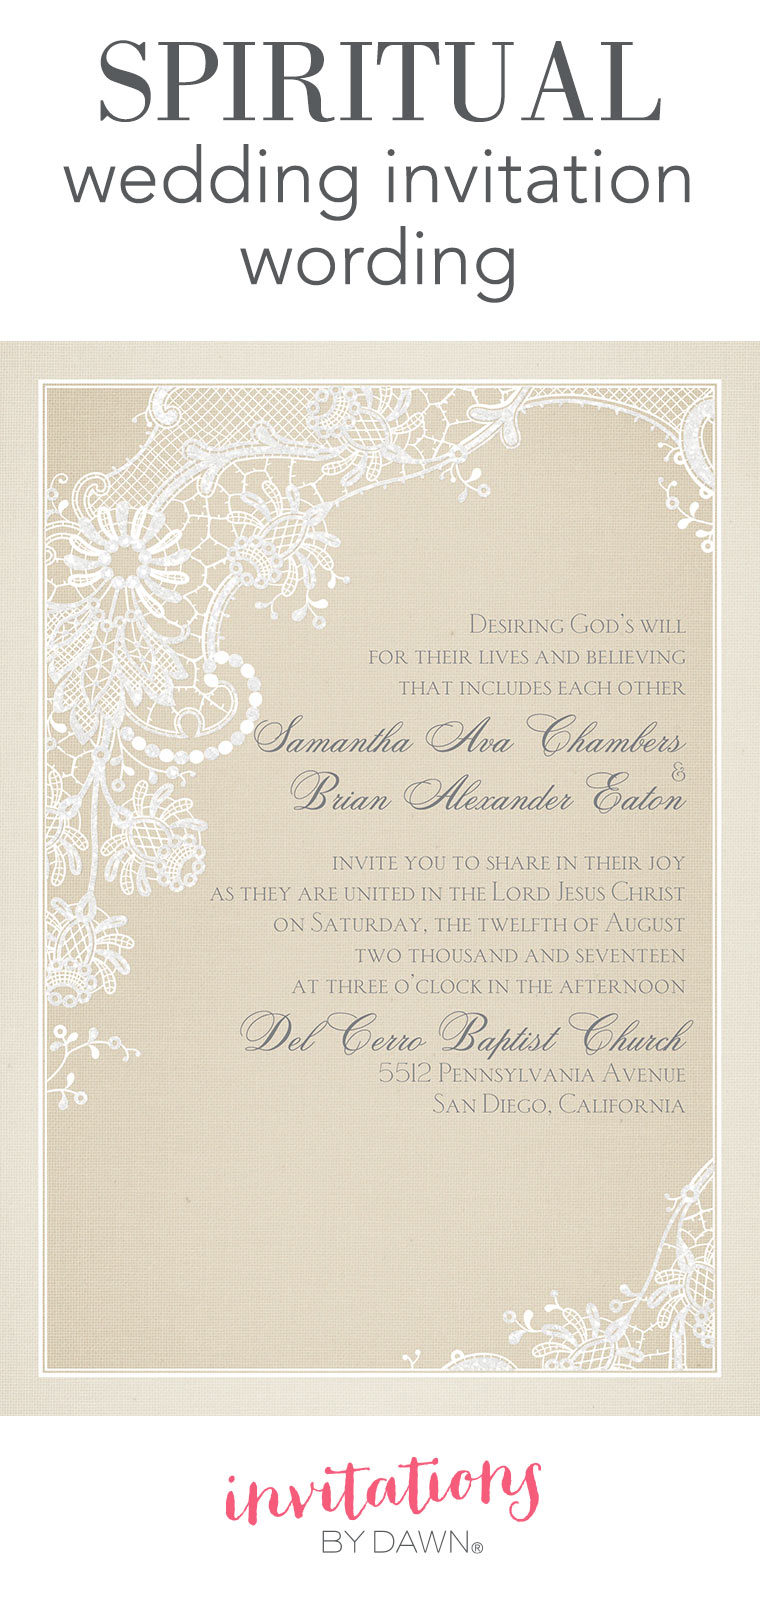 Spiritual Wedding Invitation Wording | Invitations by Dawn